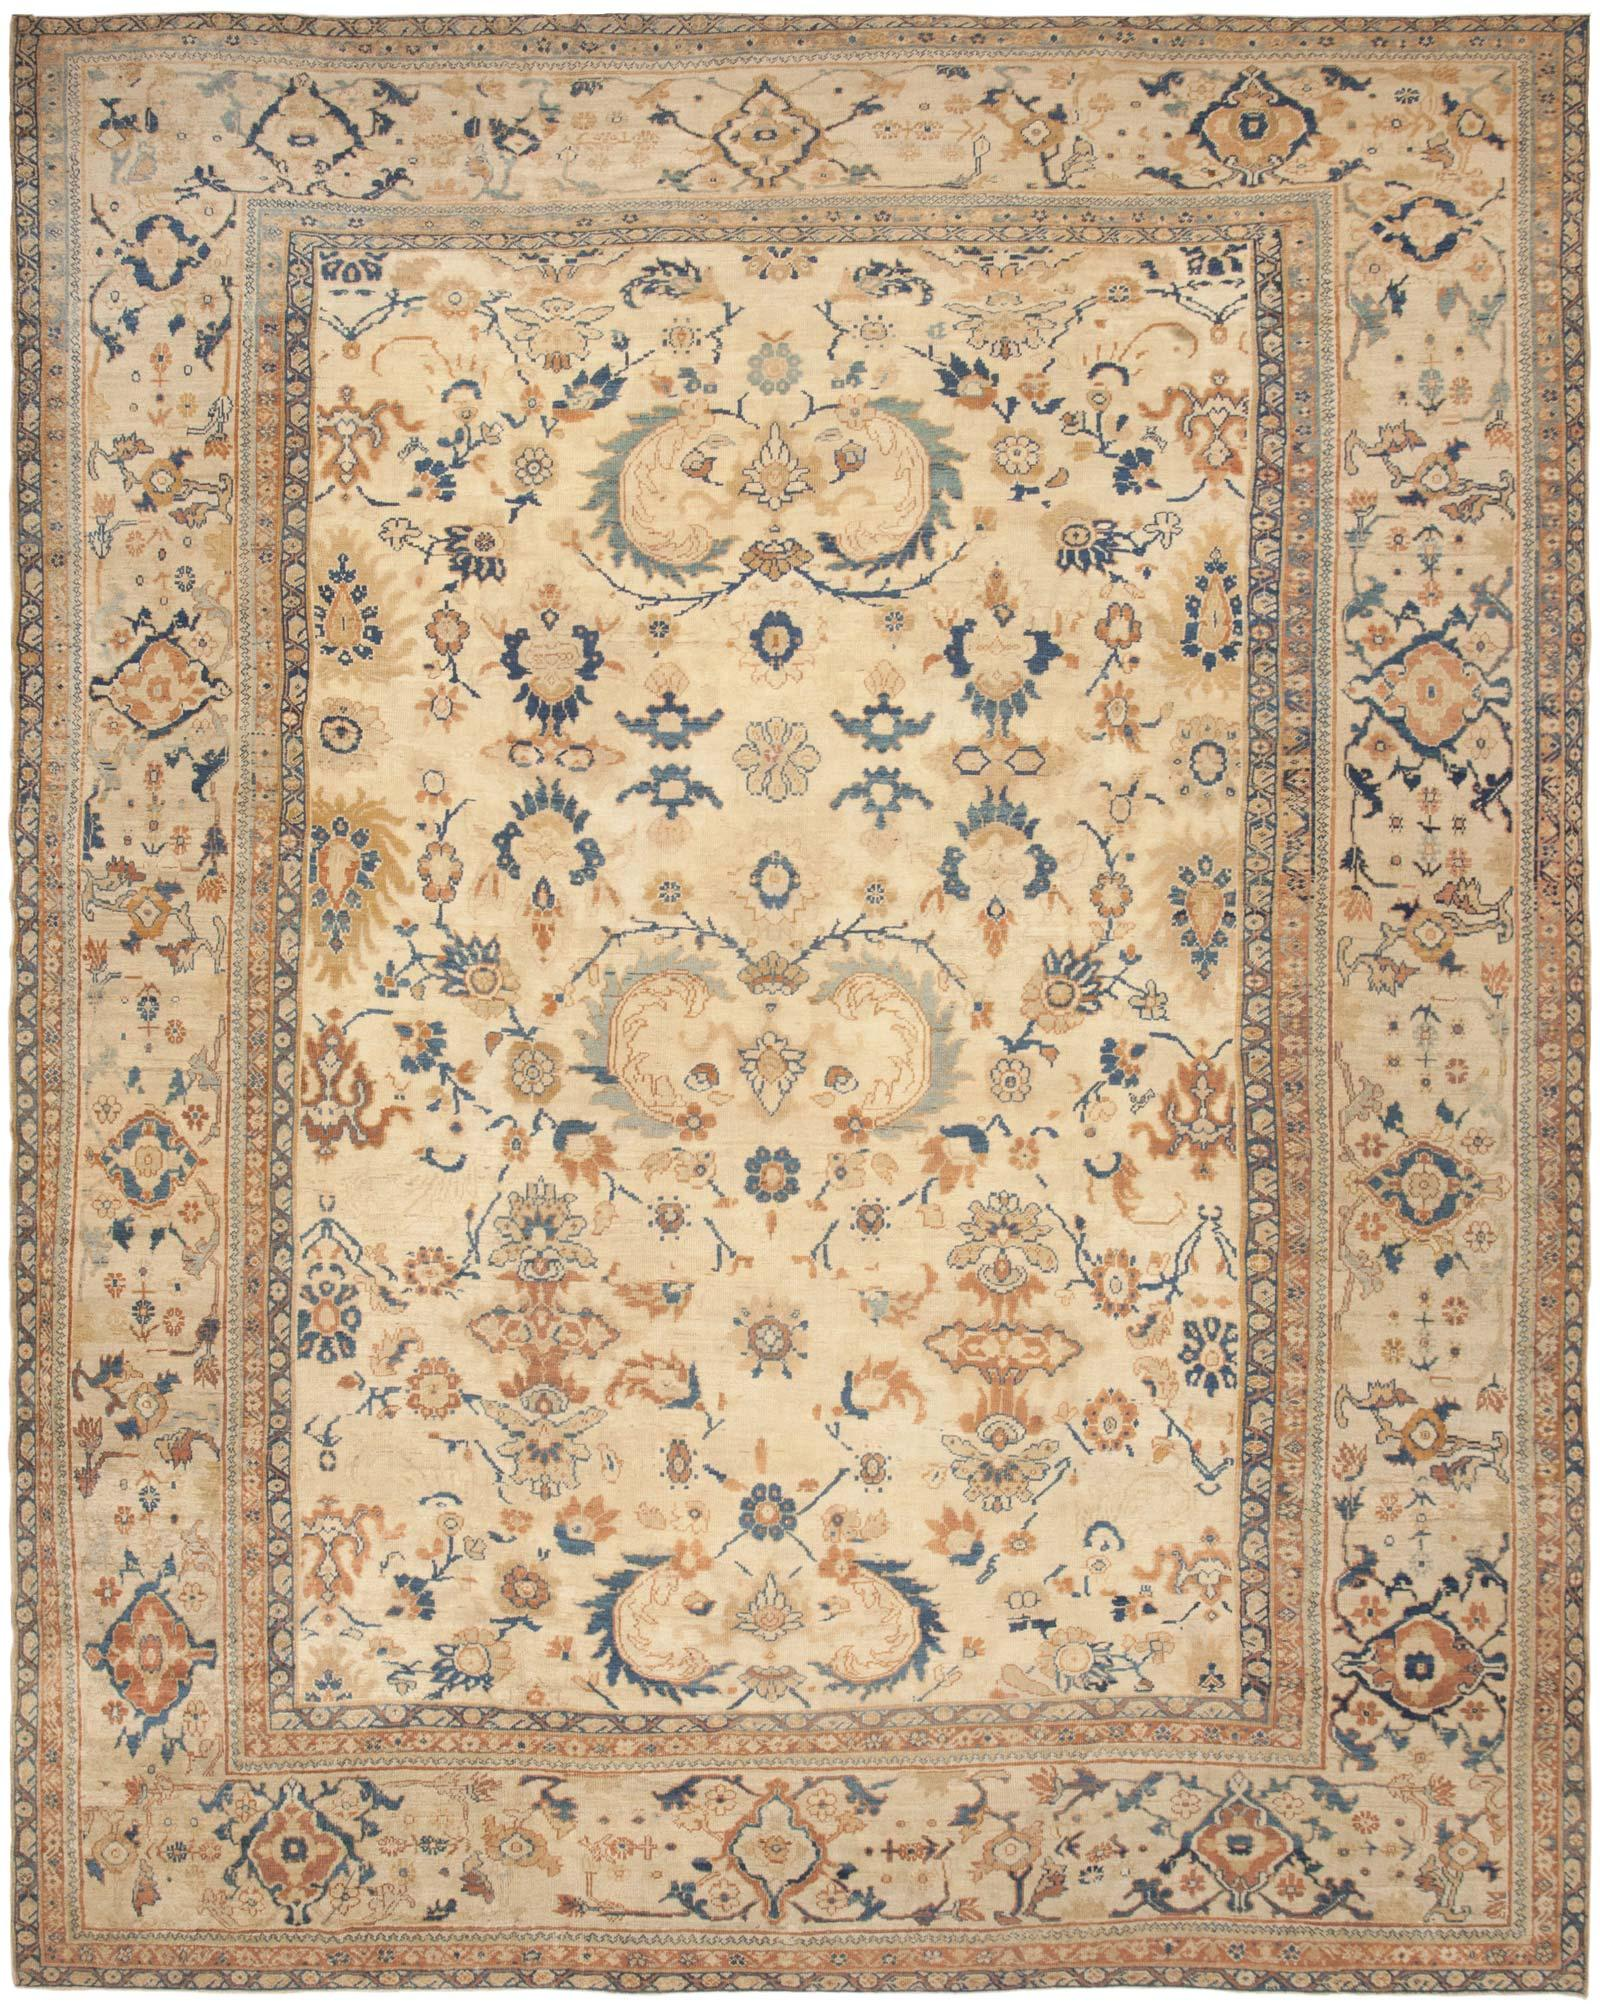 fileantique persian sultanabad rug with an ivory fieldjpg